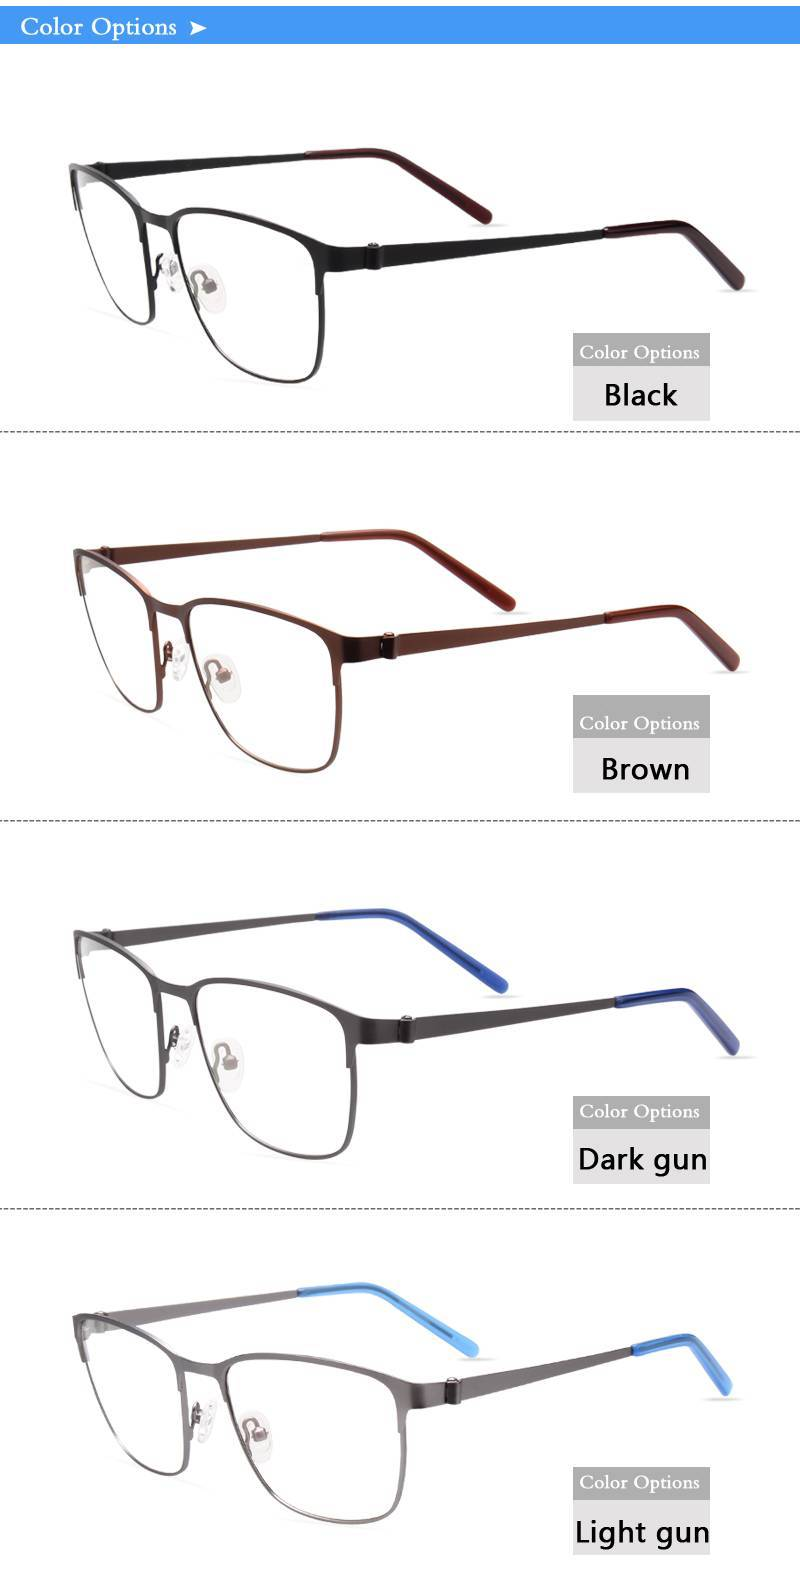 super light weight metal eyeglasses frames ready in stock selling in small MOQ